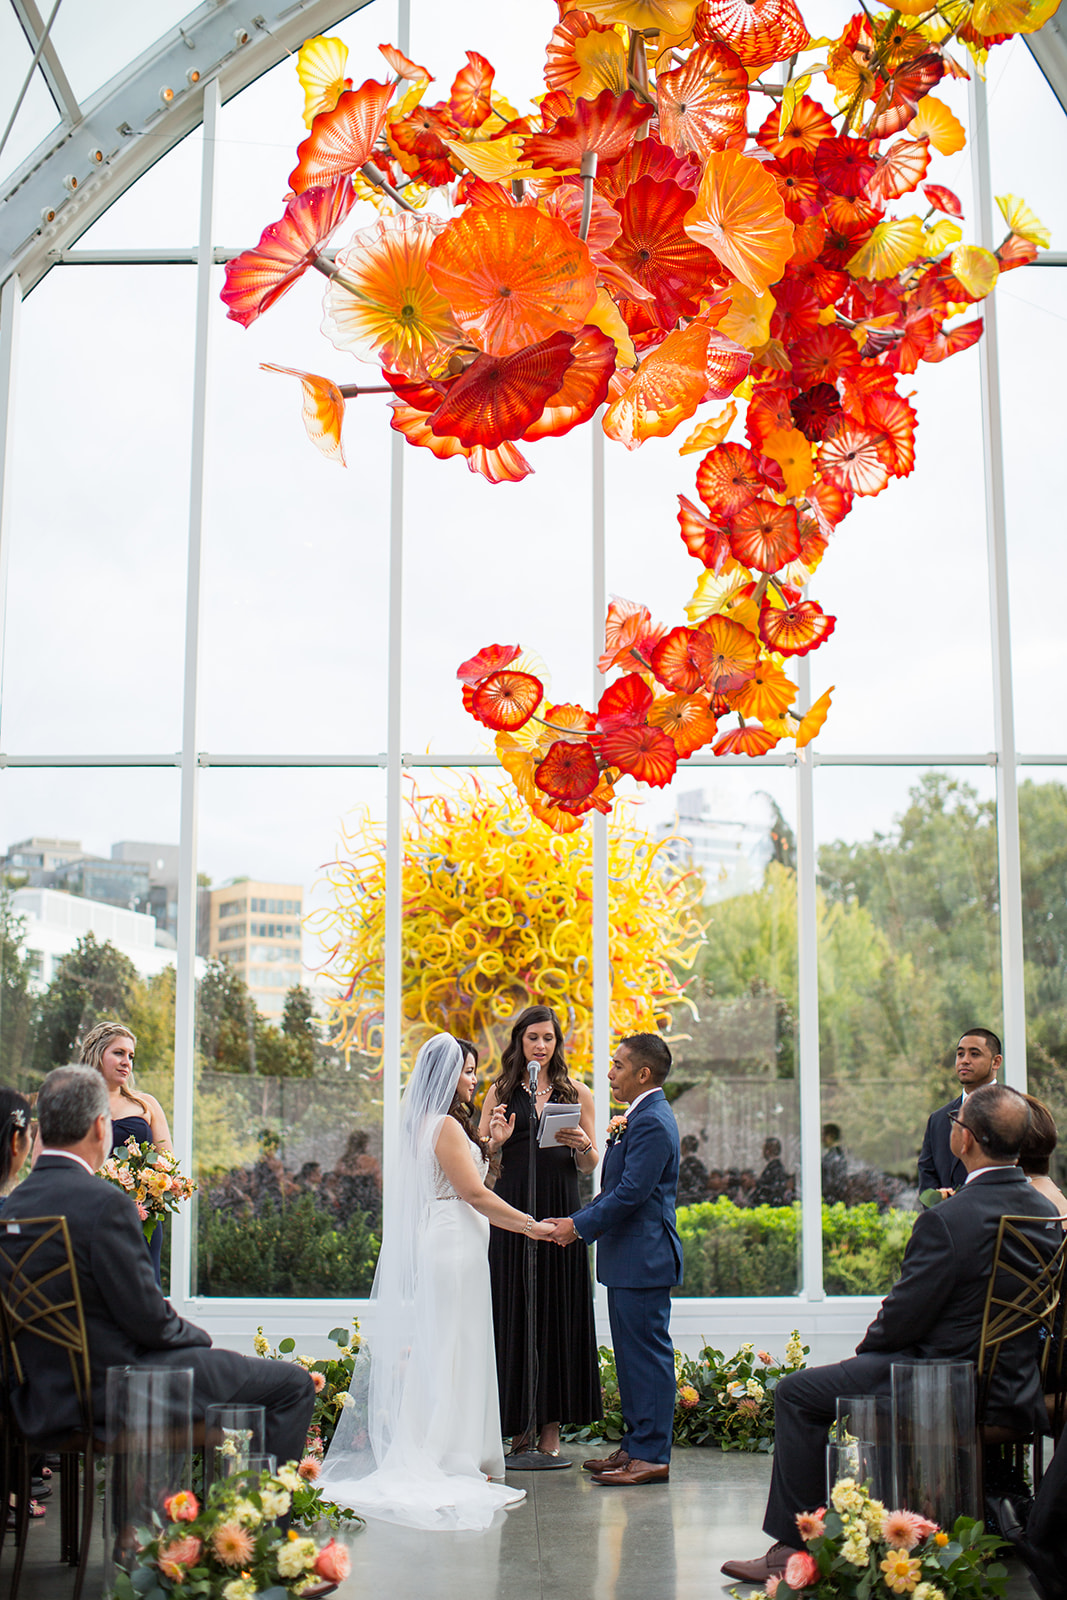 Fall wedding ceremony in the glass house at Chihuly, bride and groom surrounded by wedding guests